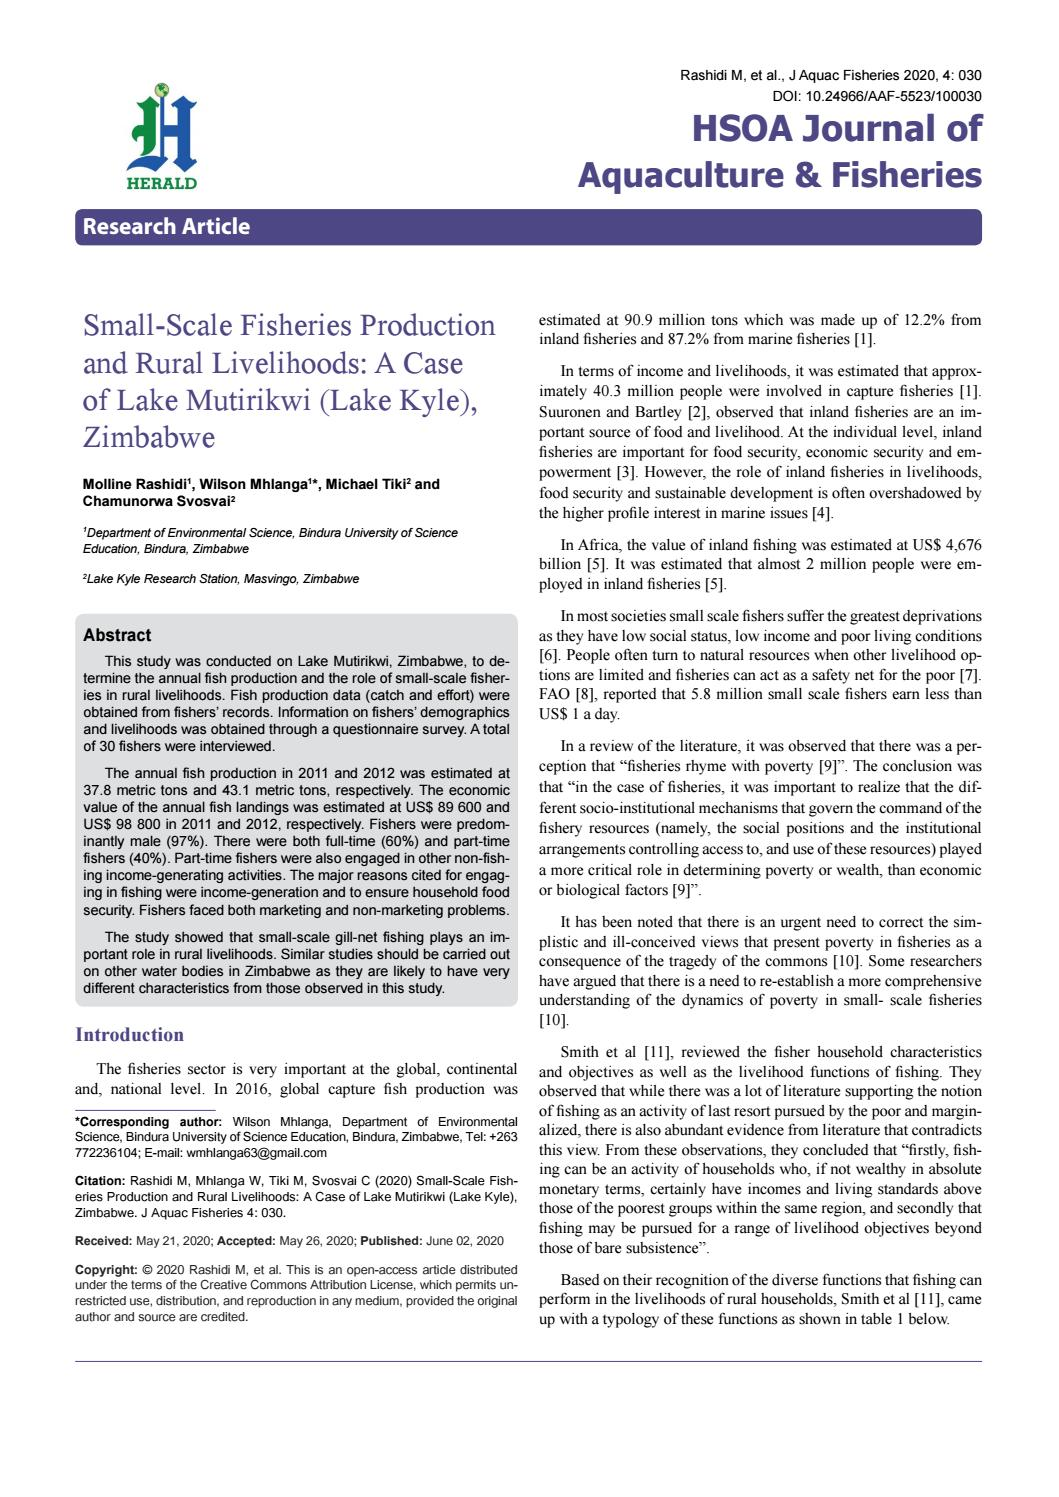 Small Scale Fisheries Production And Rural Livelihoods By Herald Scholarly Open Access Issuu